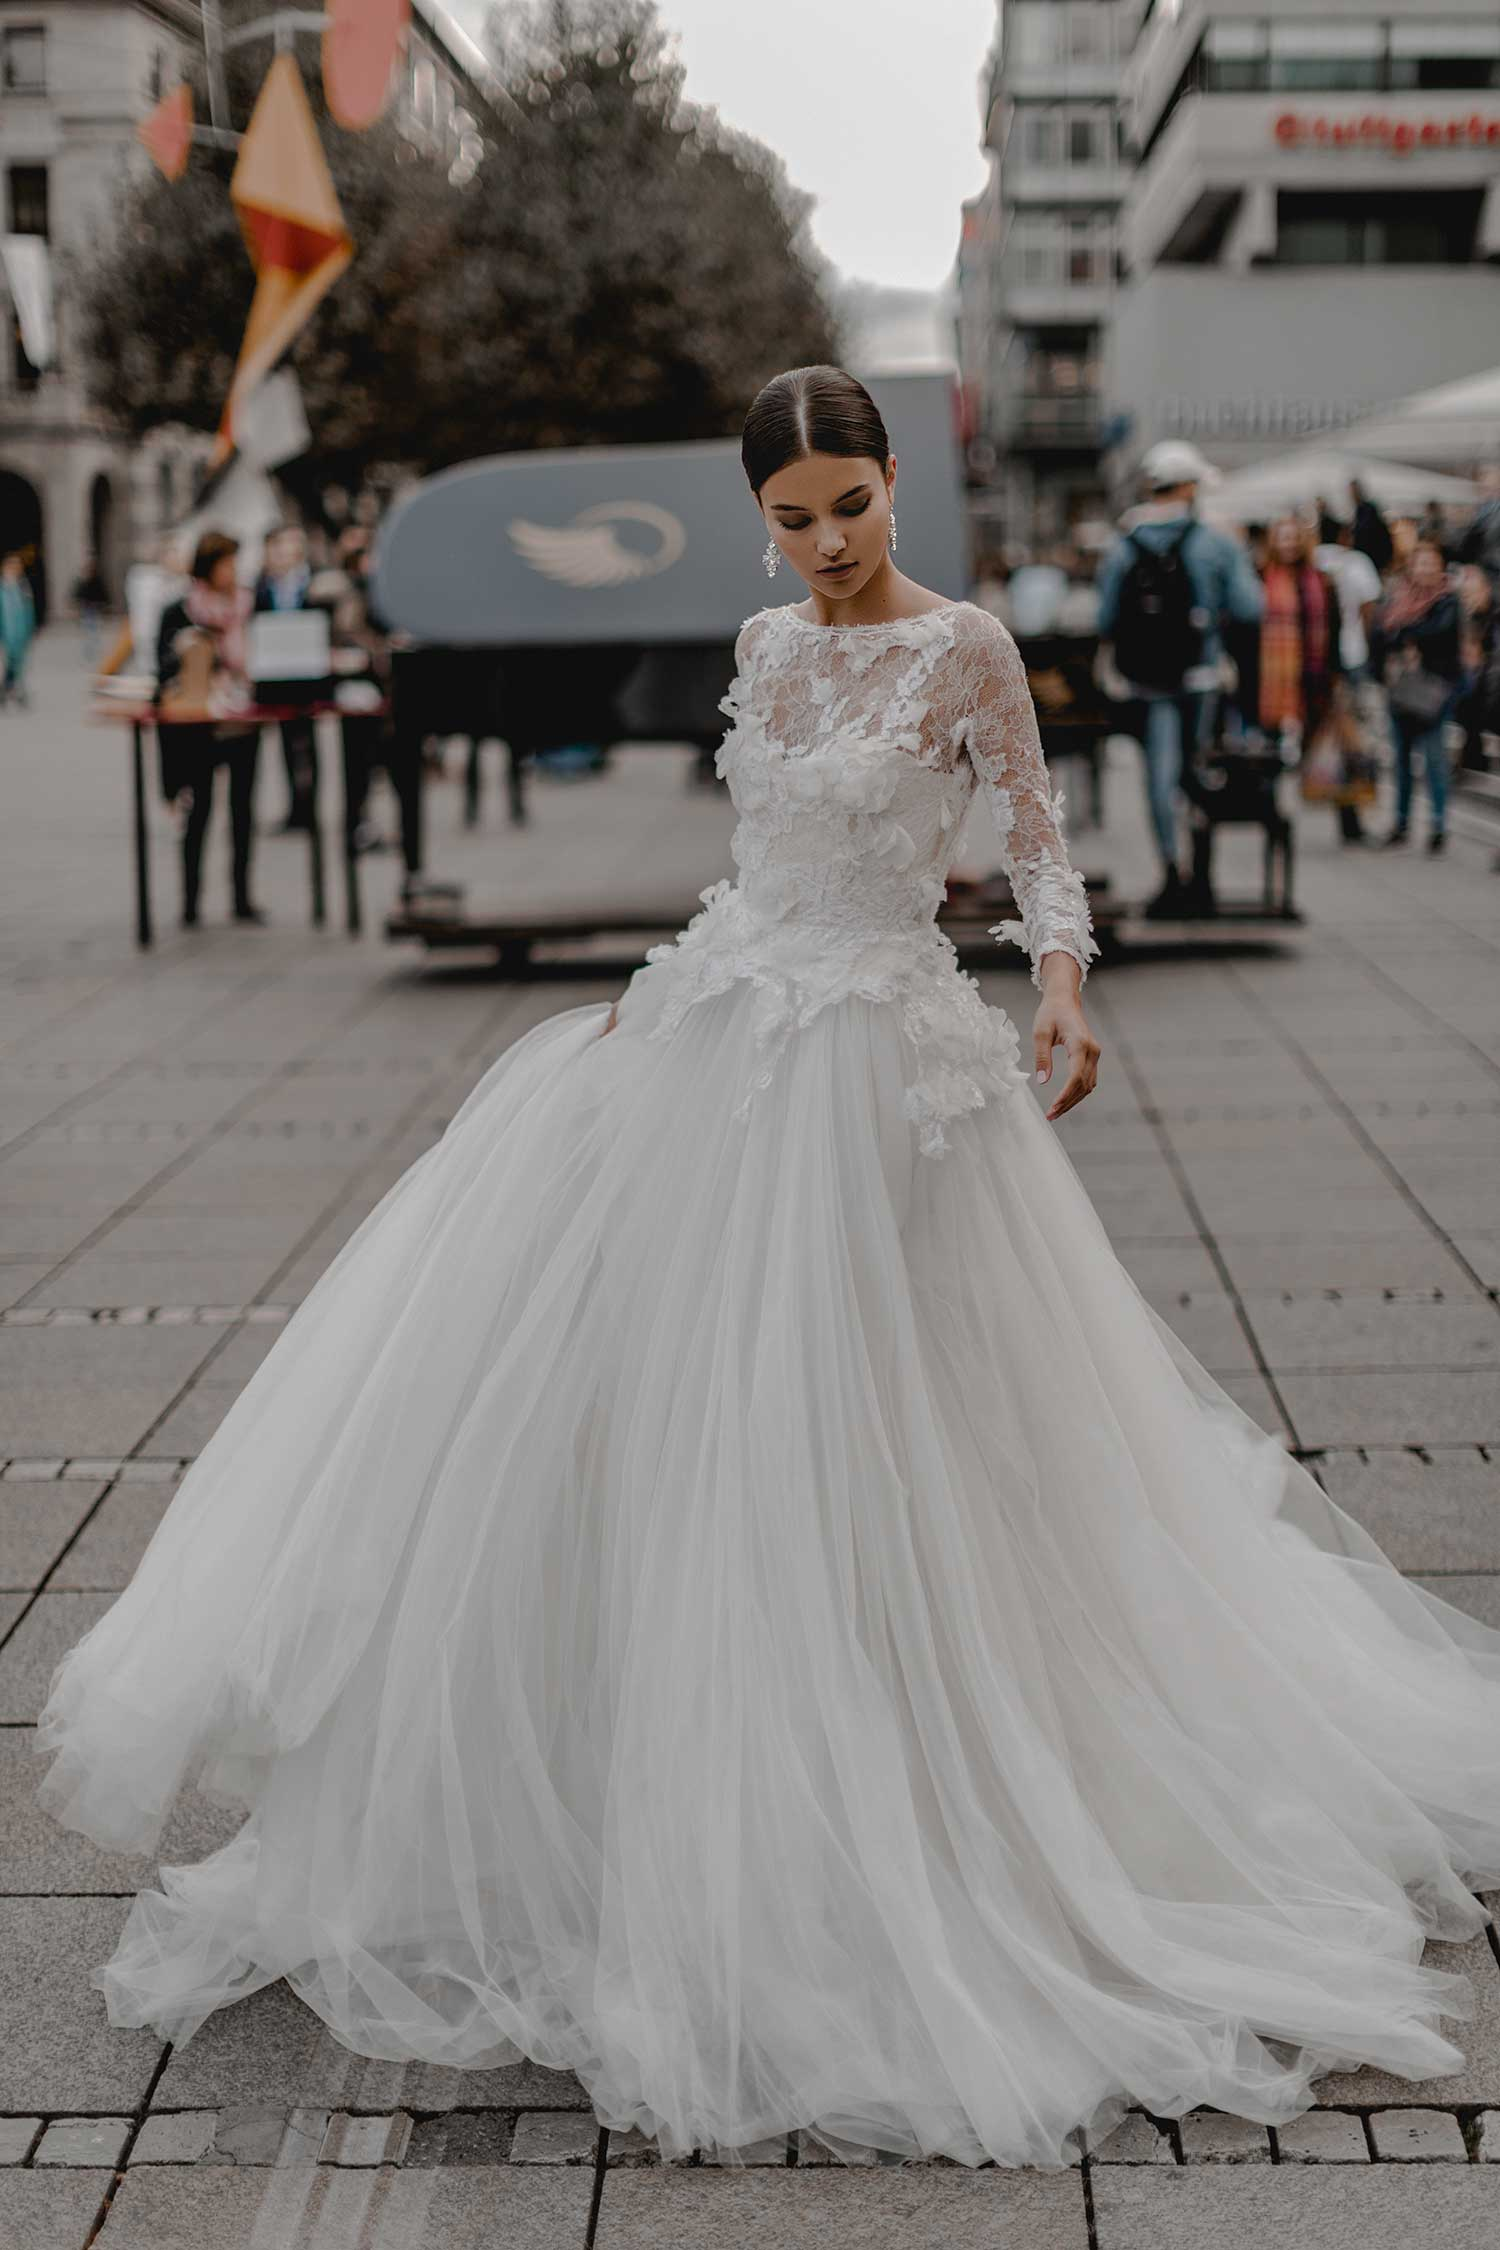 Posing in the city with a wedding dress